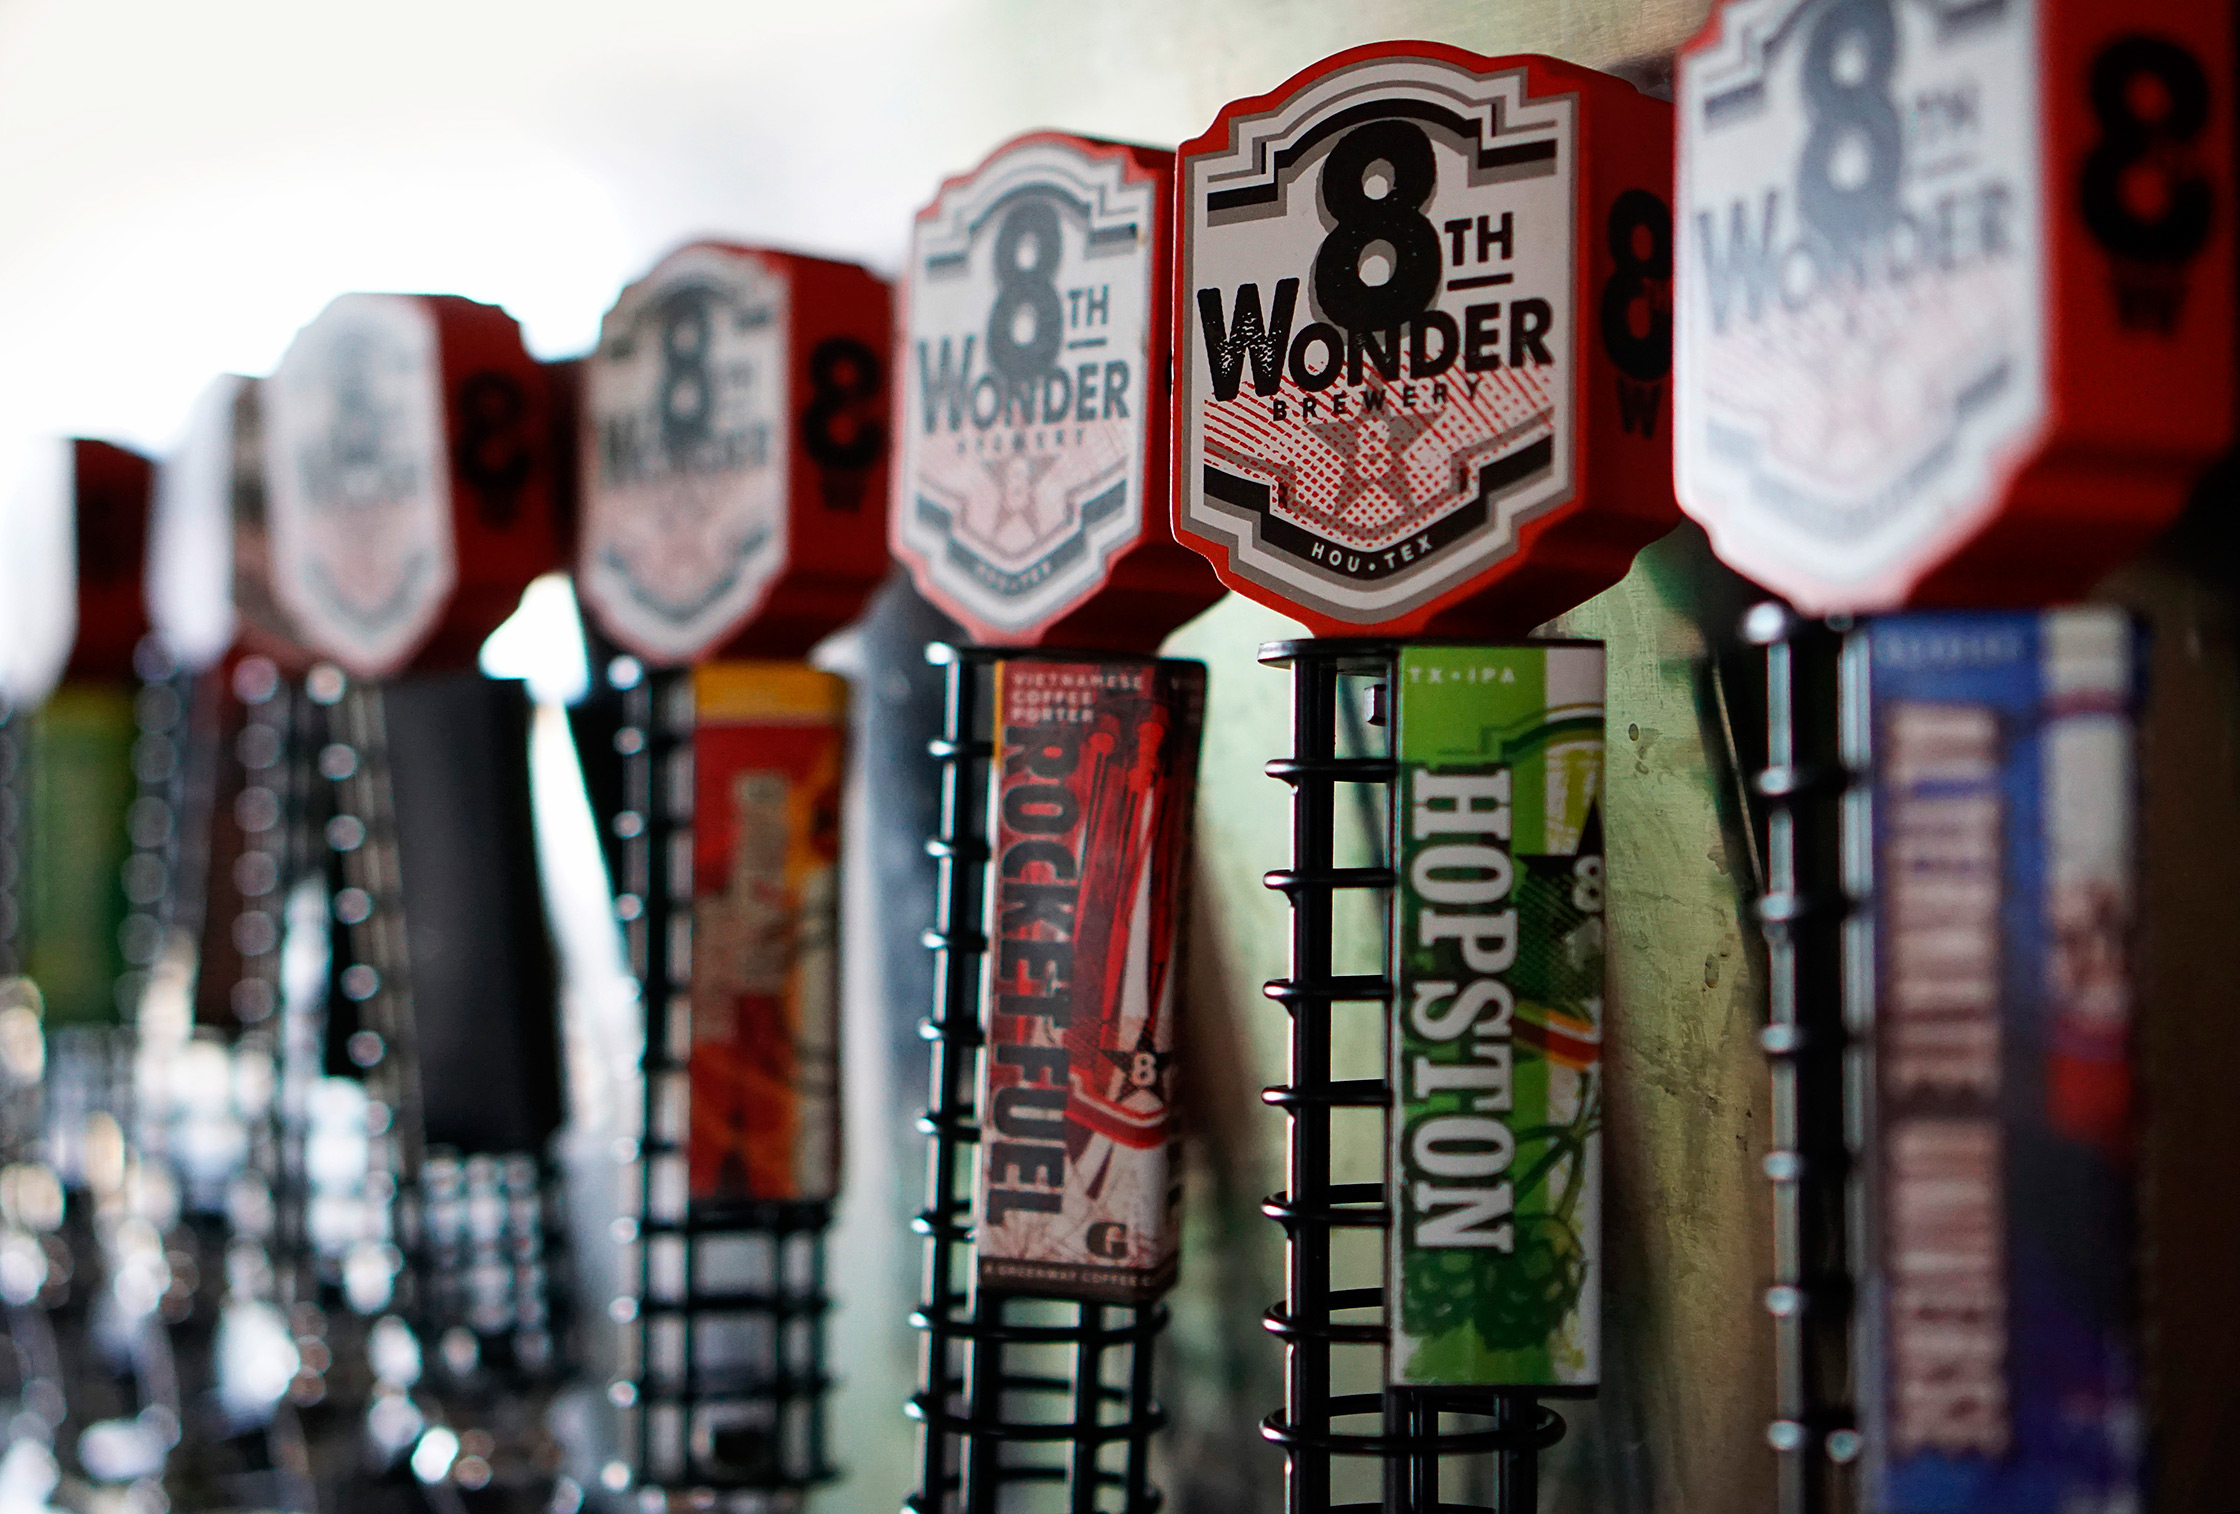 Good Project | creative brand specialists - 8th Wonder Brewery